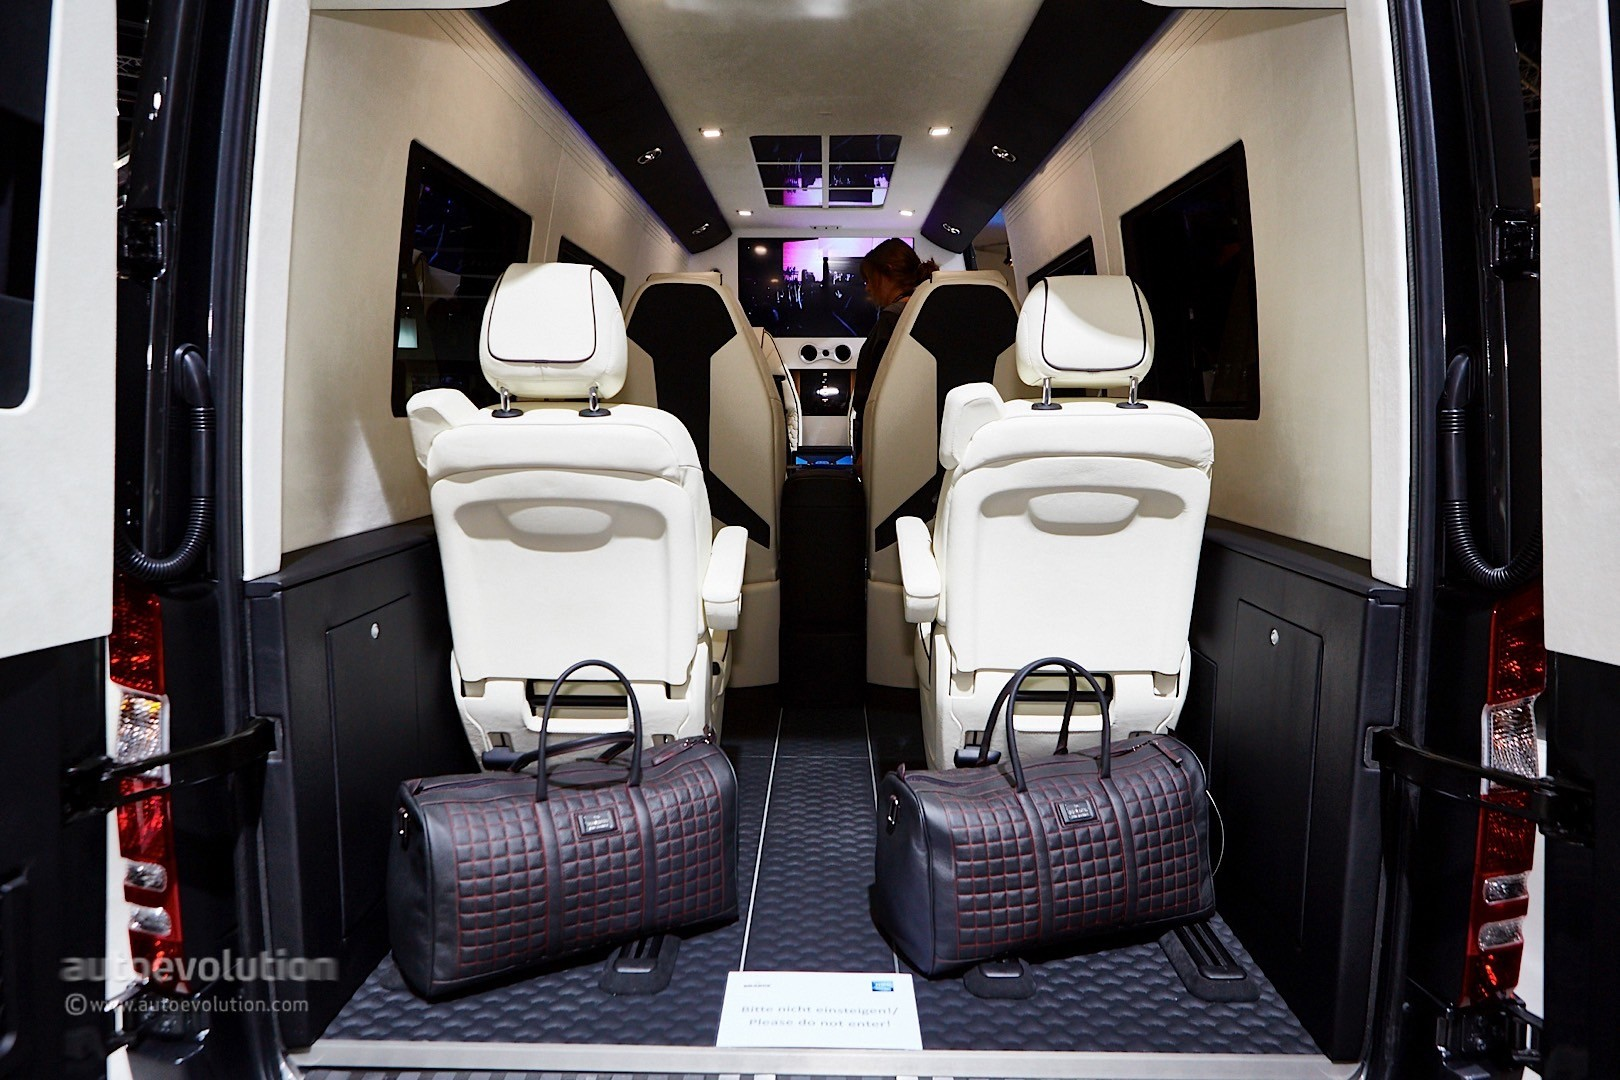 ' ' from the web at 'http://s1.cdn.autoevolution.com/images/news/gallery/brabus-sprinter-and-v-class-fill-the-luxury-van-gap-in-frankfurt-live-photos_9.jpg'